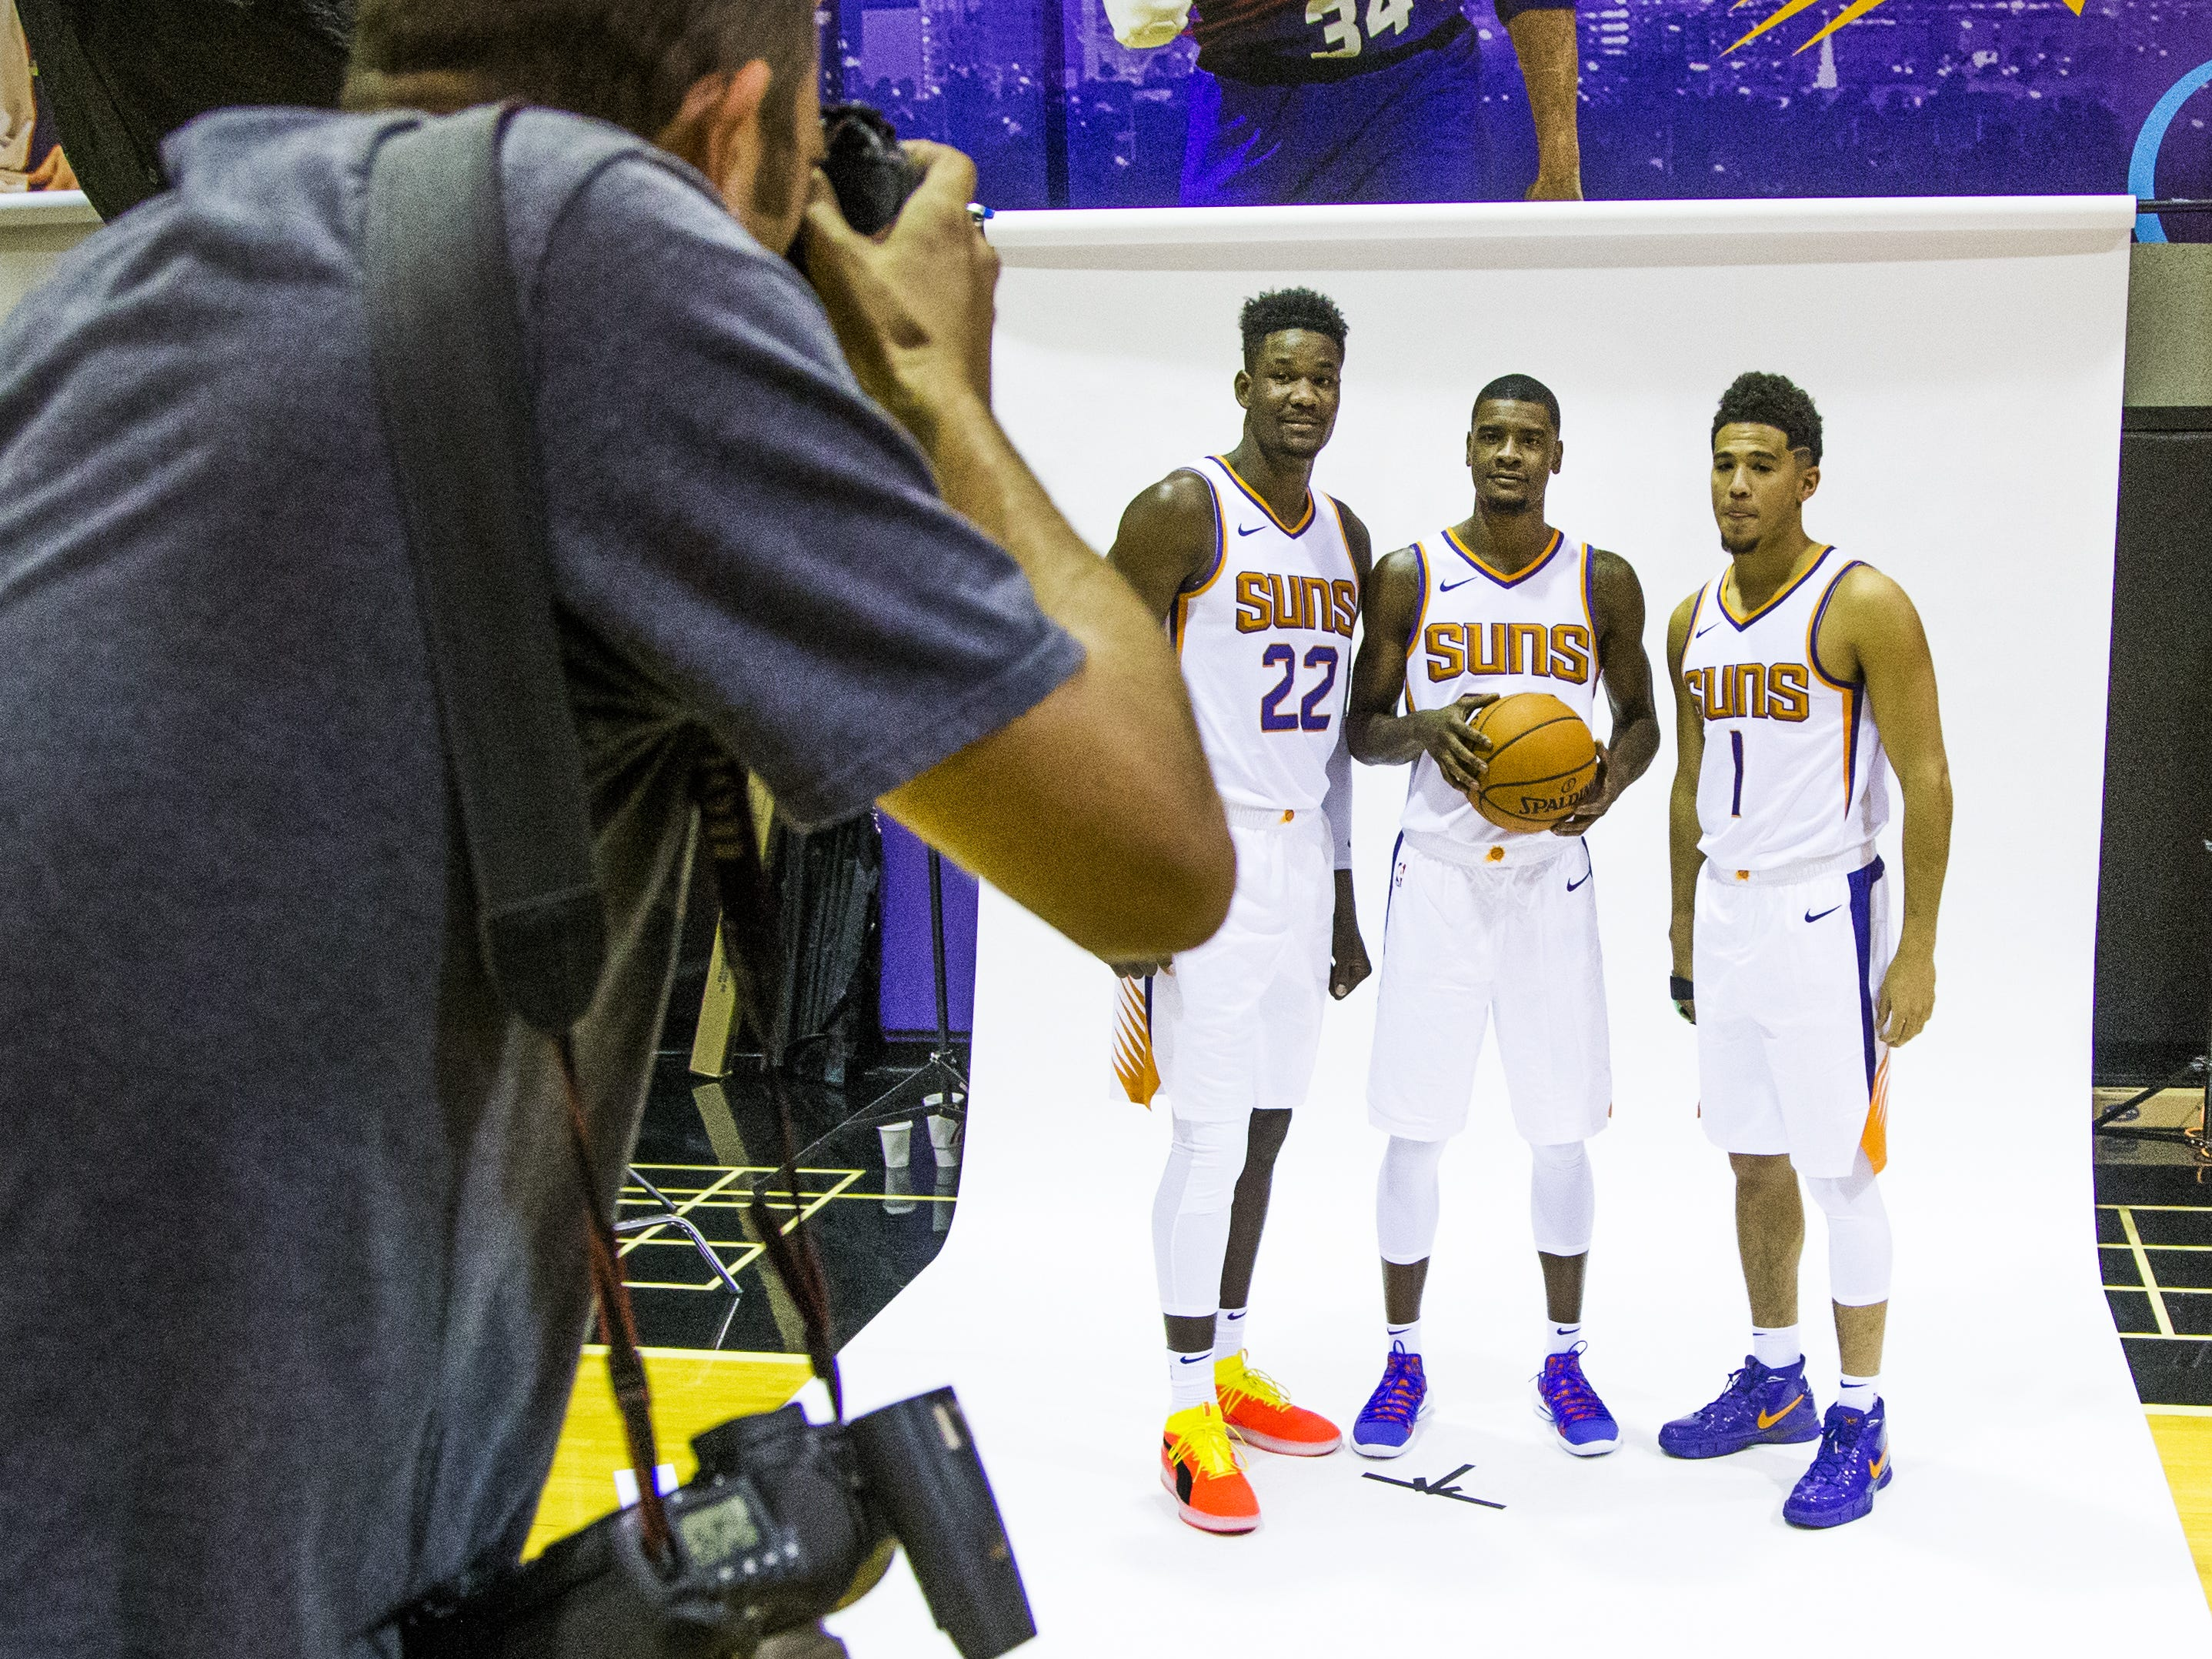 Photographer Mark Rebilas takes a photo of Deandre Ayton, center for the Phoenix Suns, forward Josh Jackson and guard Devin Booker, right, at Phoenix Suns Media Day at Talking Stick Resort Arena in Phoenix, Monday, September 24, 2018.